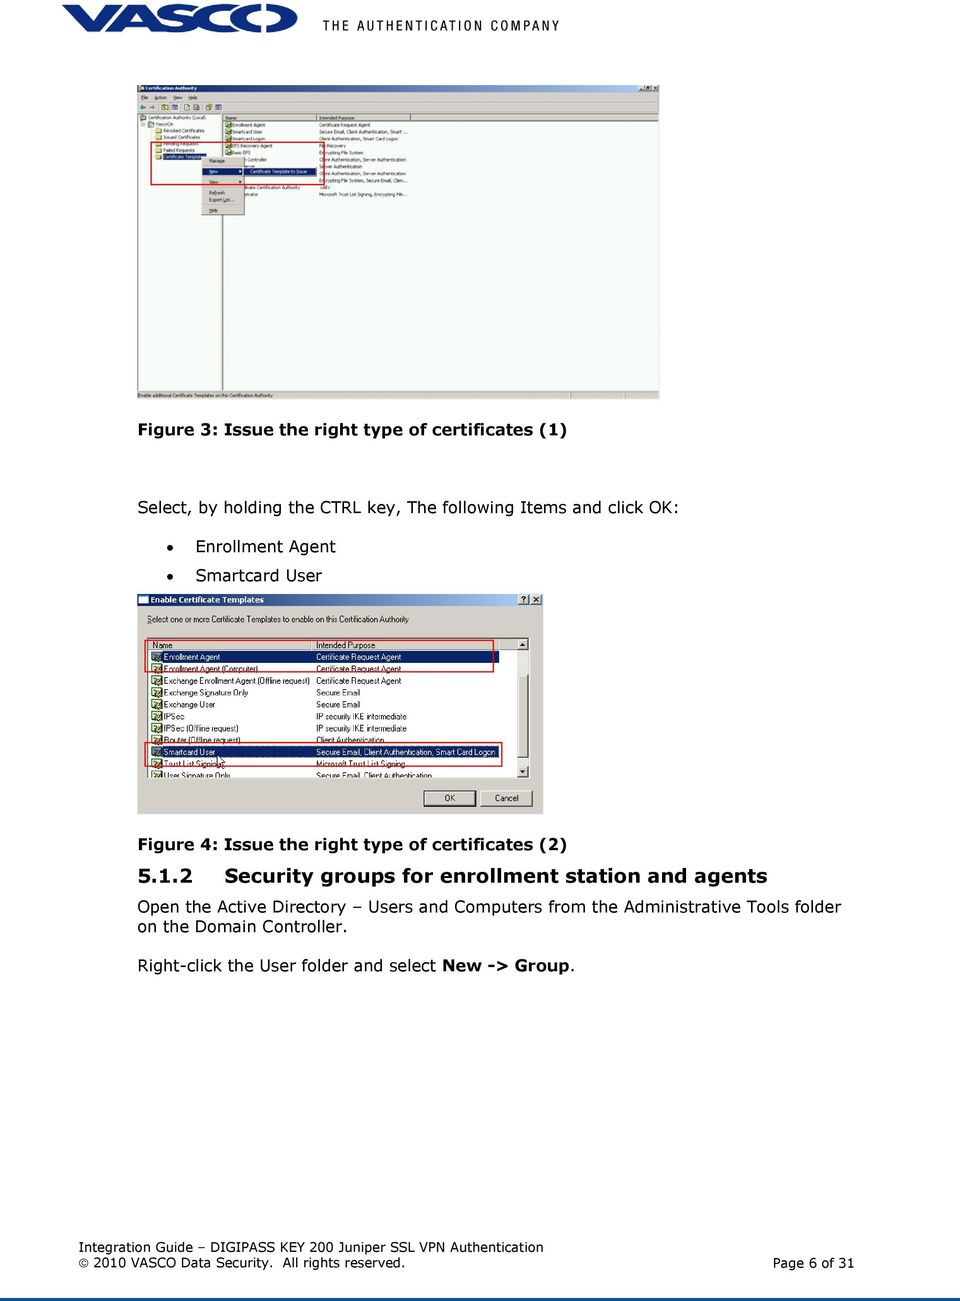 2 Security groups for enrollment station and agents Open the Active Directory Users and Computers from the